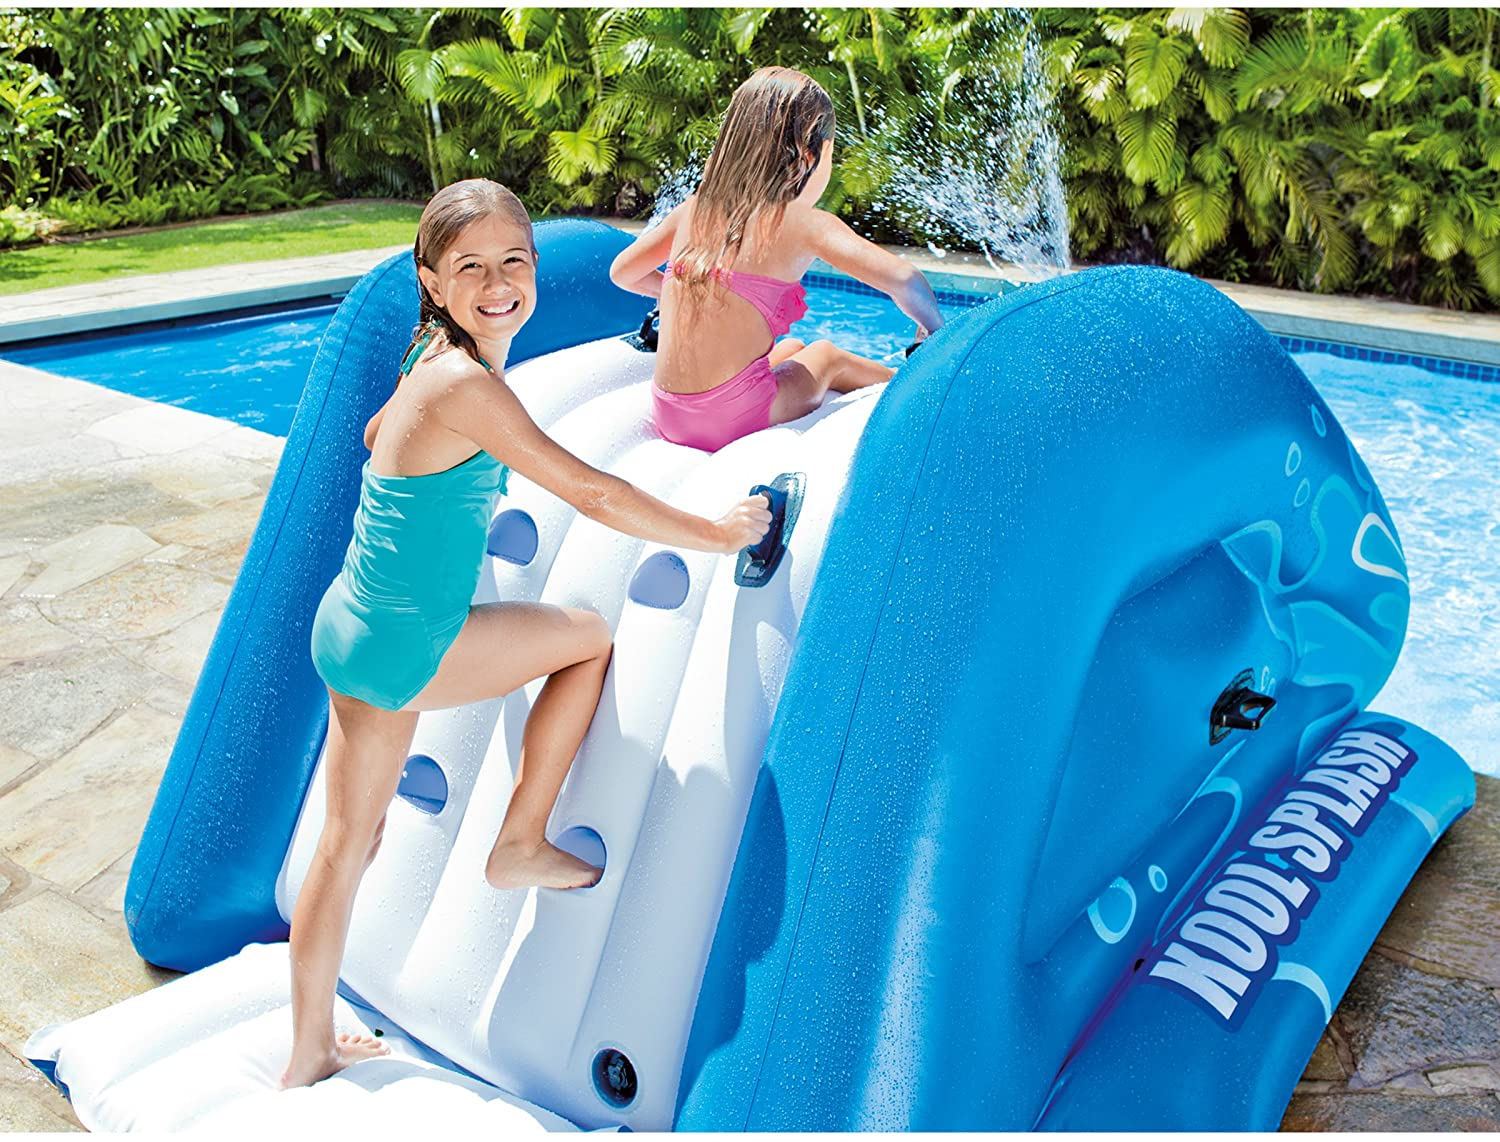 "Intex Water Slide, Inflatable Play Center, 131"" X 81"" X 46"", for Ages 6 and up"